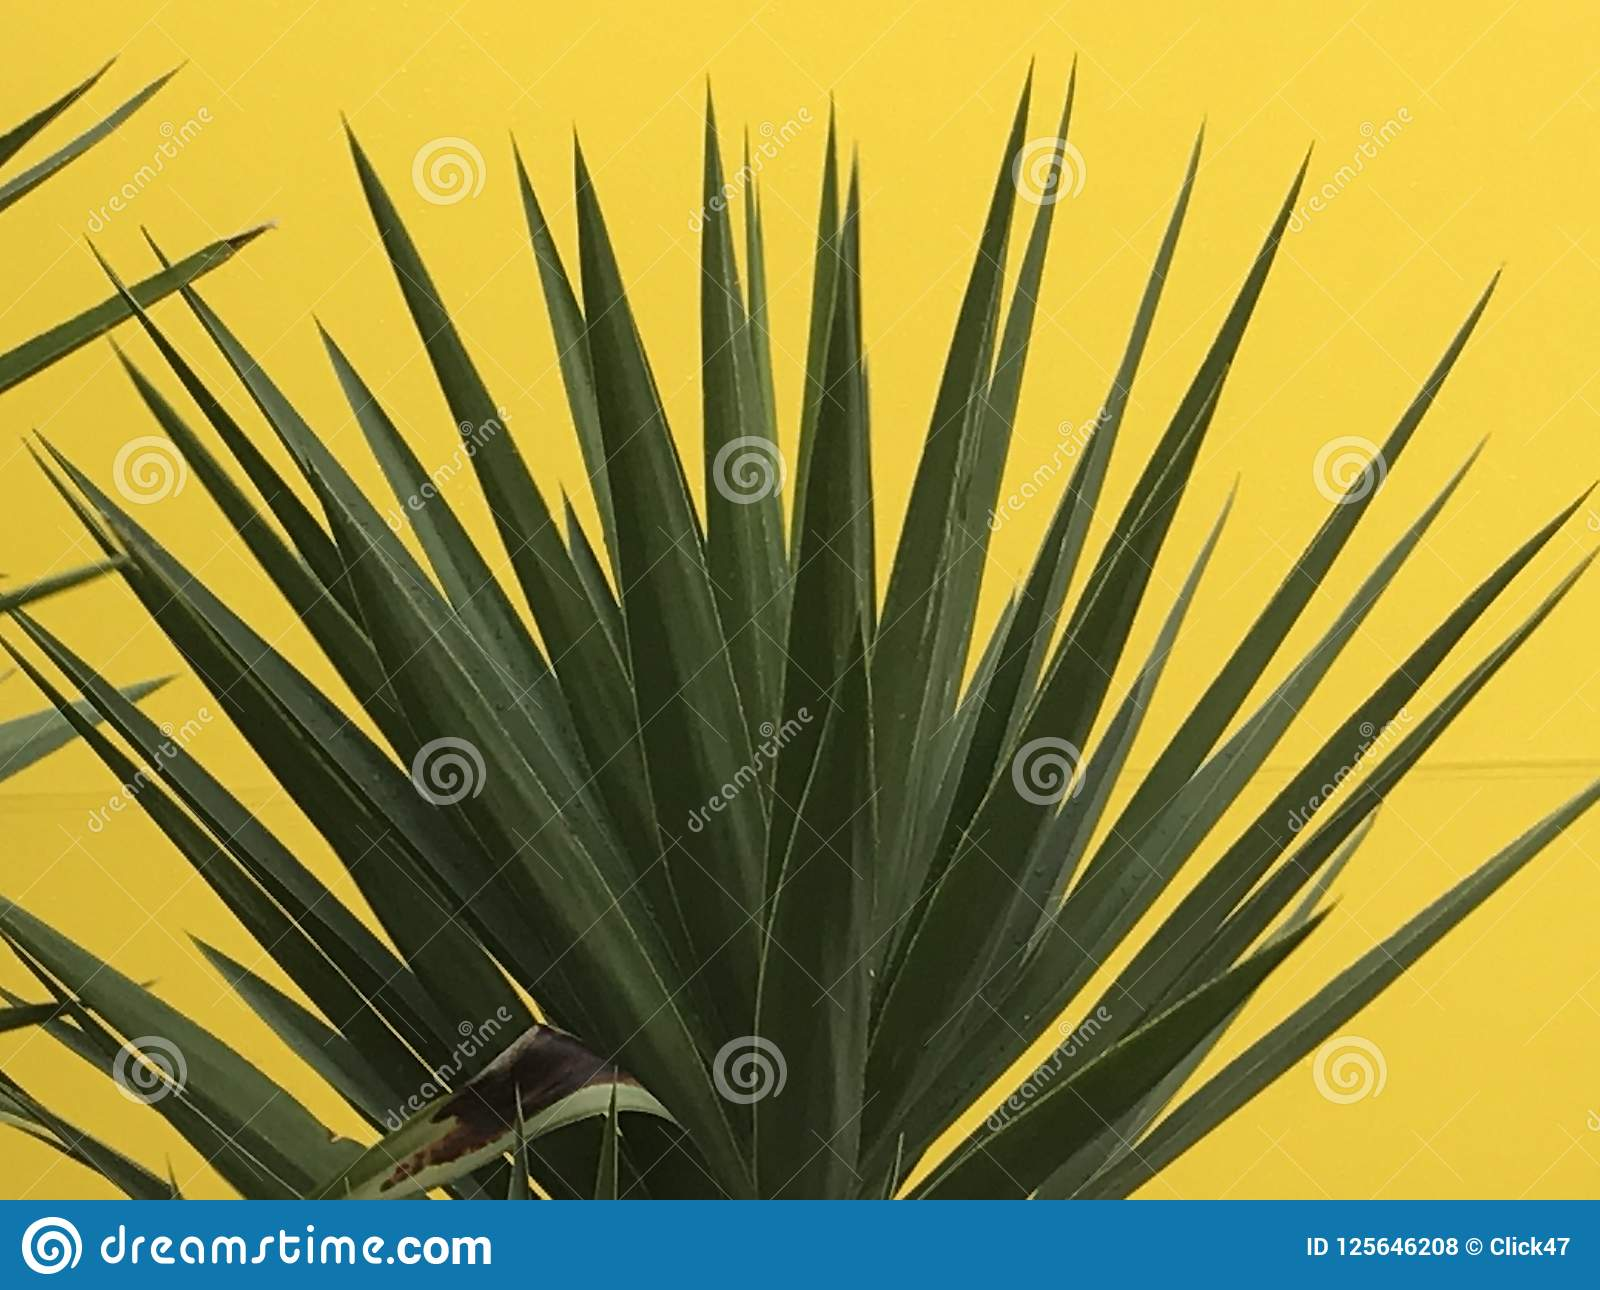 Spiky Green Garden Plant Against Yellow Background Stock Photo